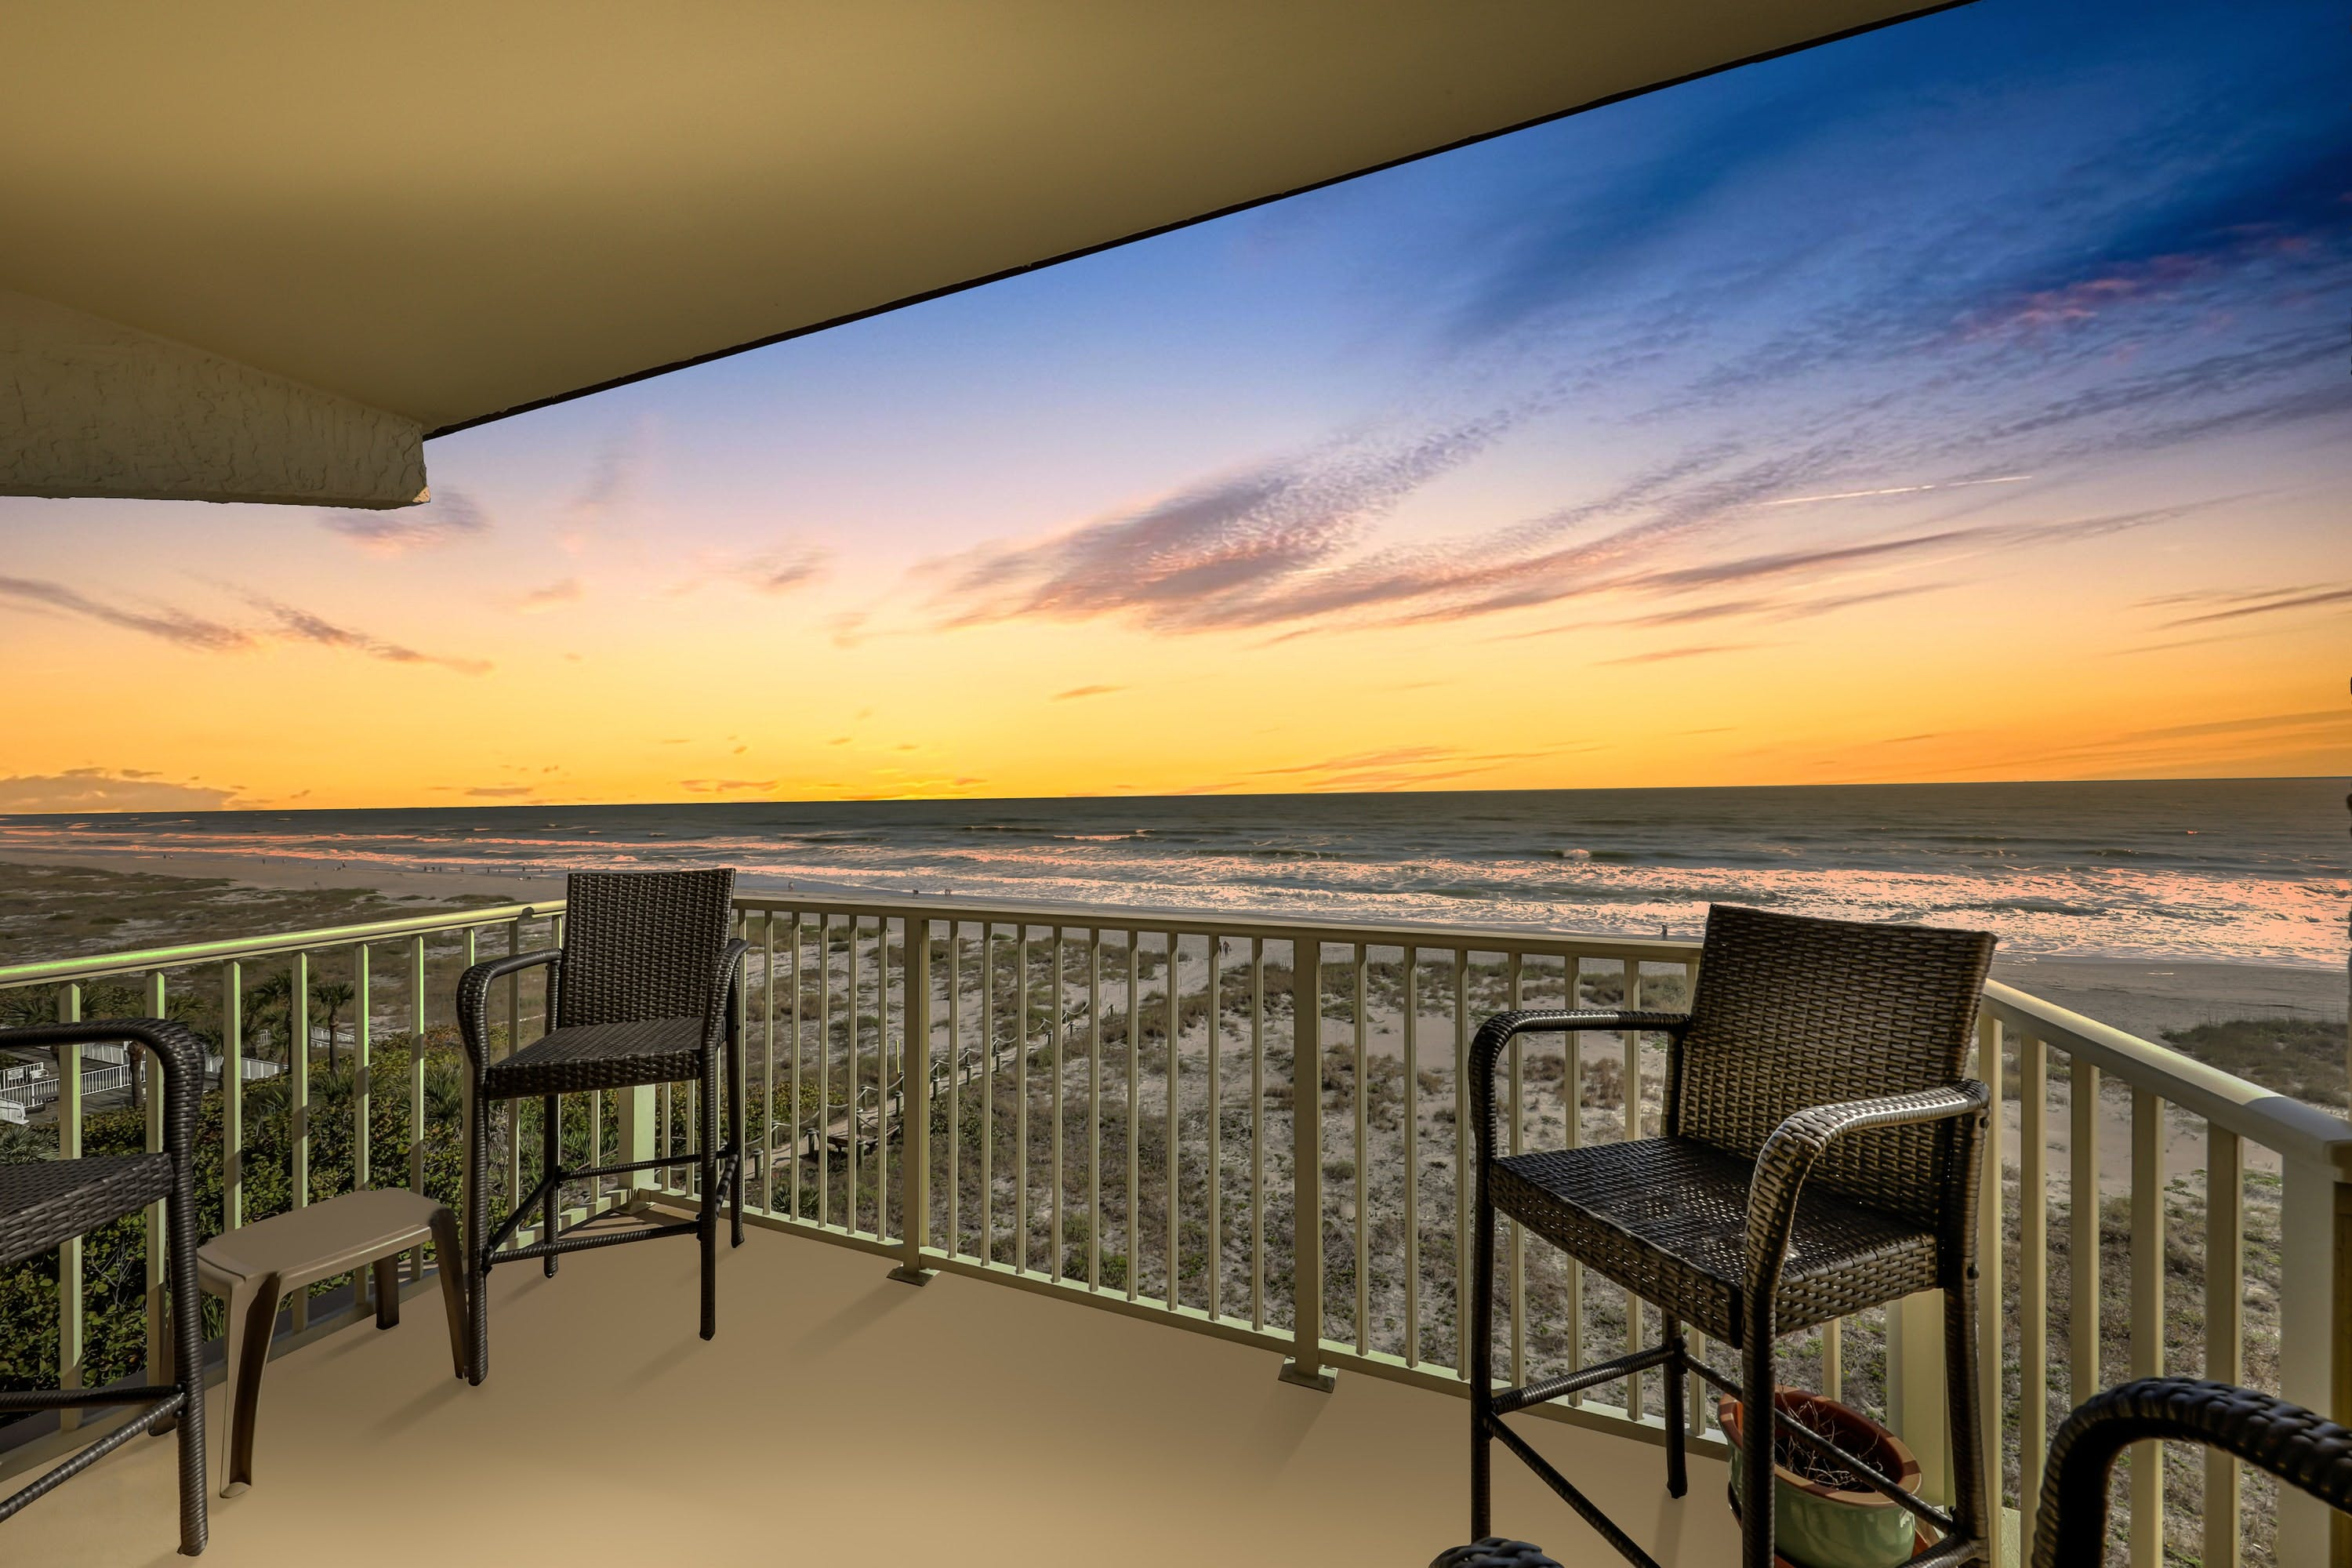 Balcony overlooking the ocean and beach during sunset in Cocoa Beach, FL